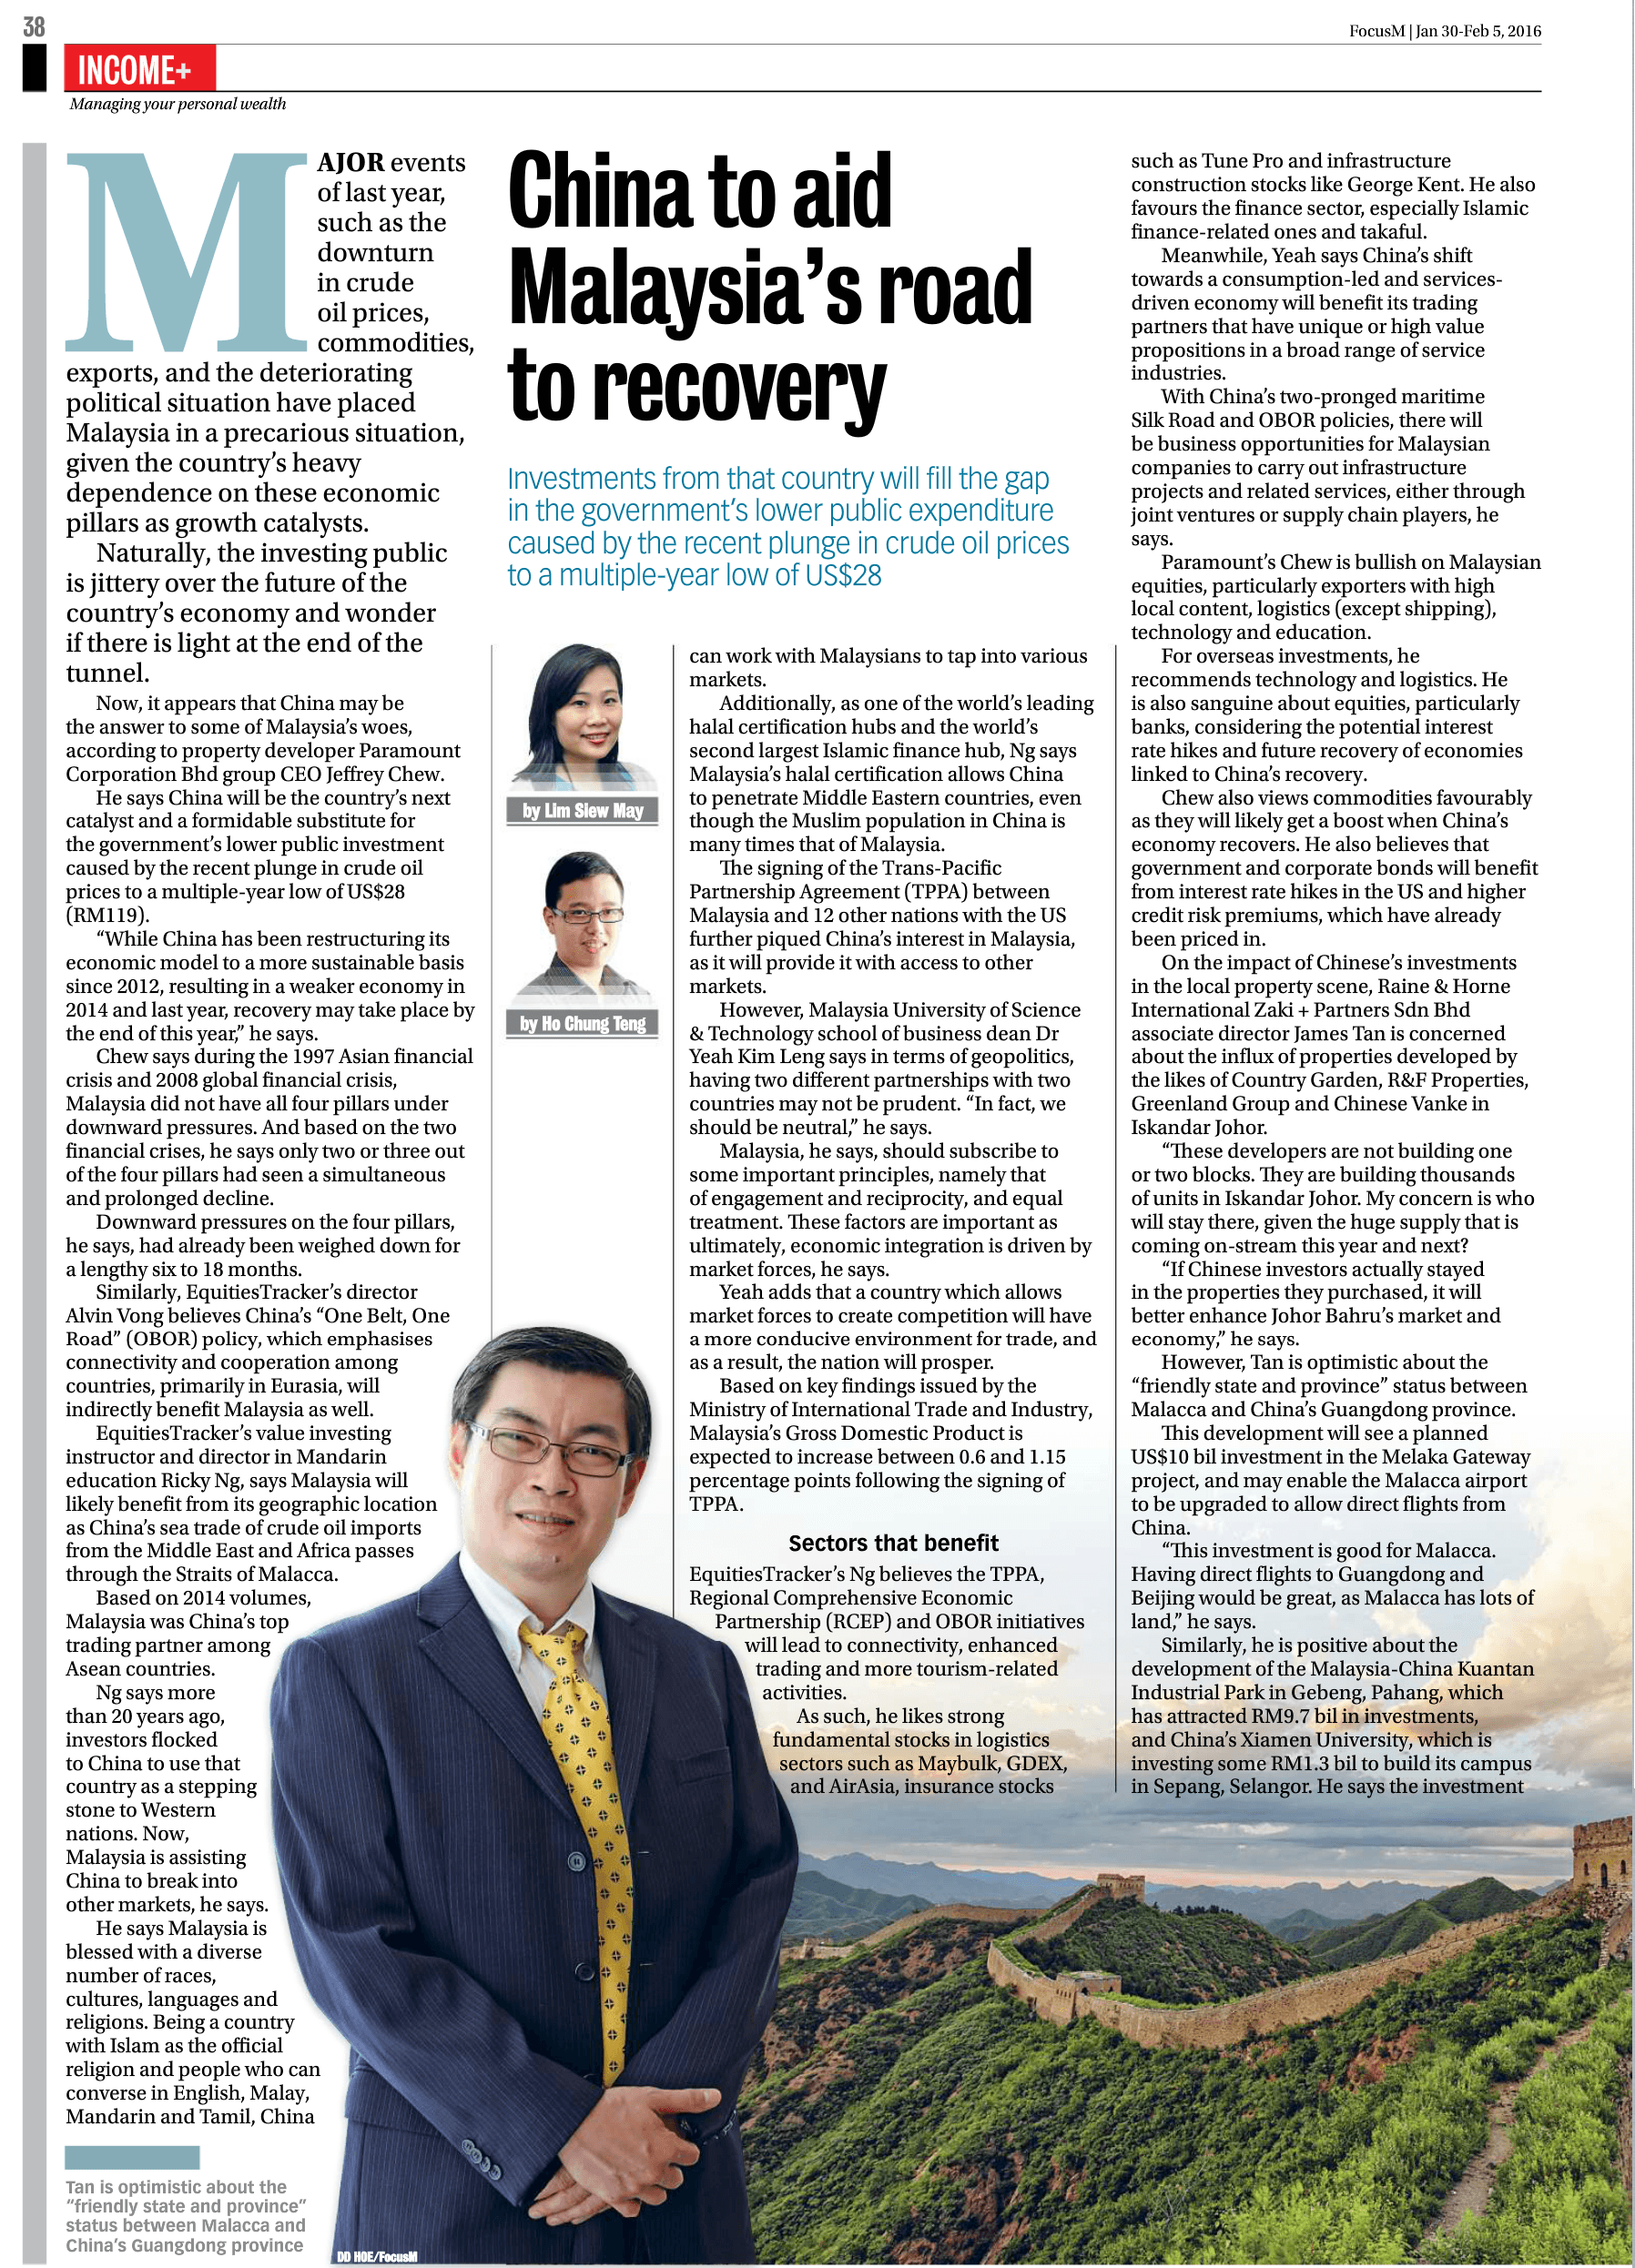 Media Coverage FOCUSMY ISSUE165 pg38 INCOME